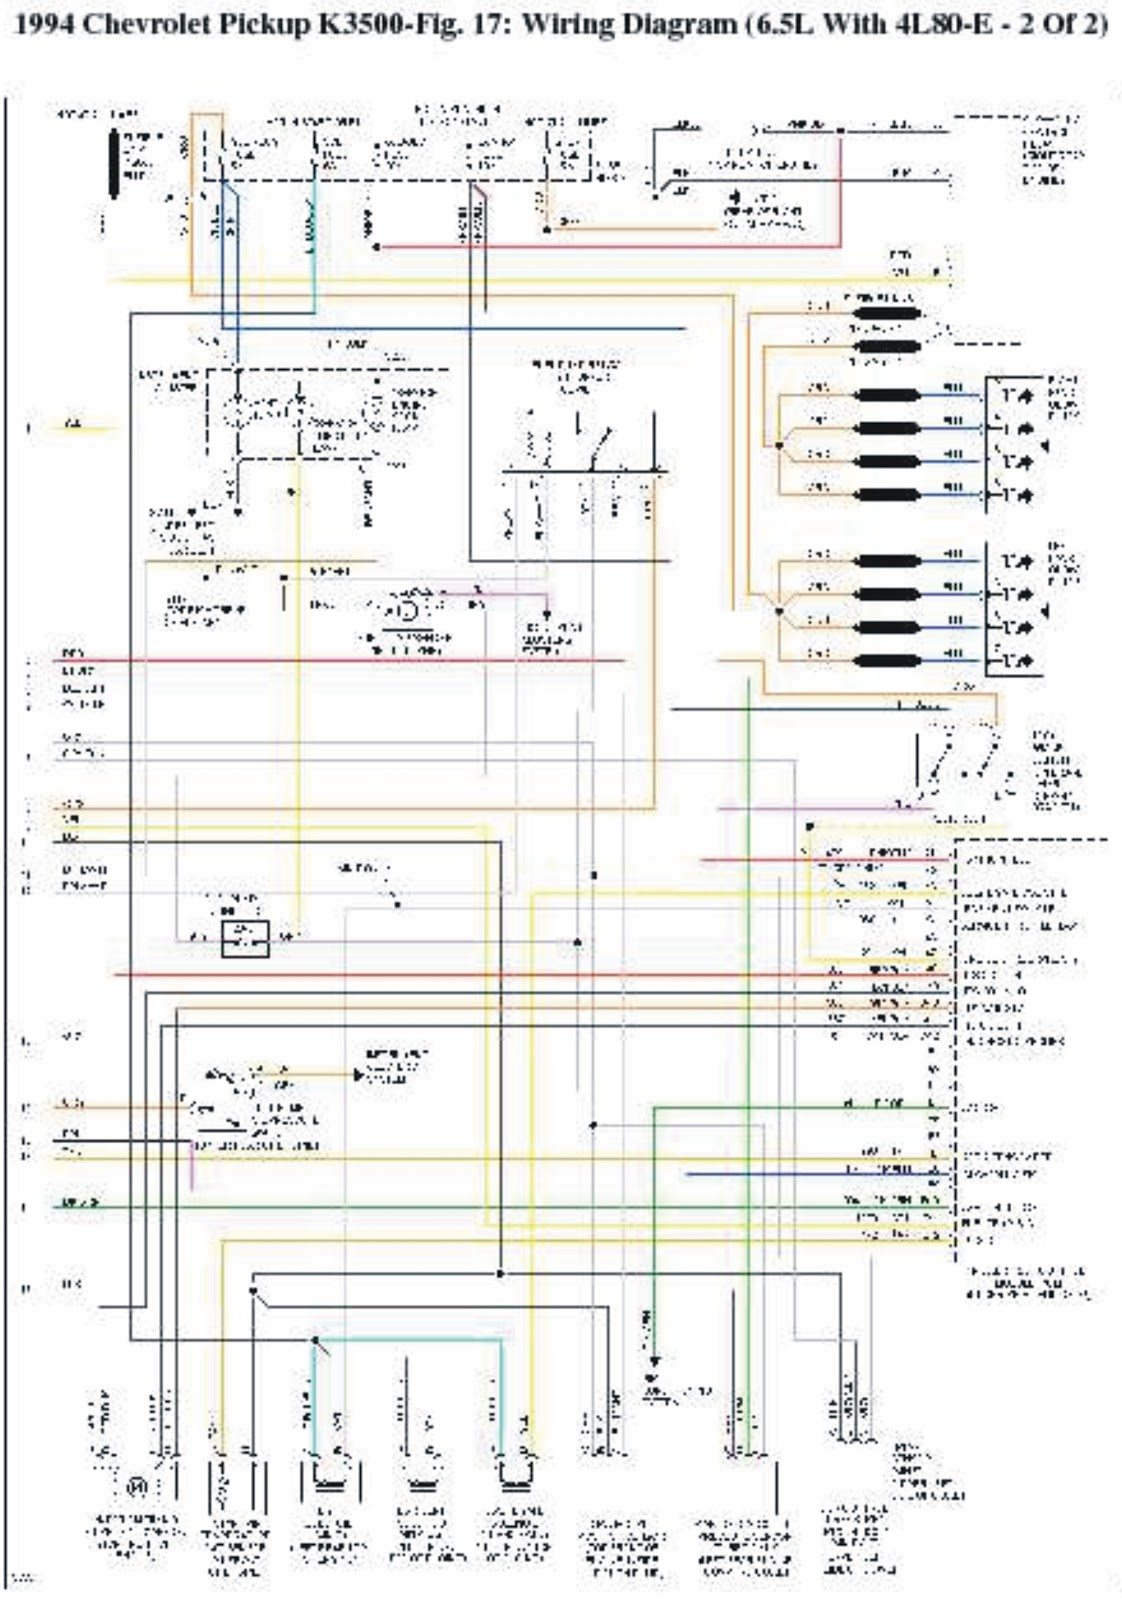 1994+chevrolet+pick+up+K3500%25232 1994 mustang wiring diagram 1994 ford mustang wiring diagram ignition wiring diagram 93 mustang at honlapkeszites.co